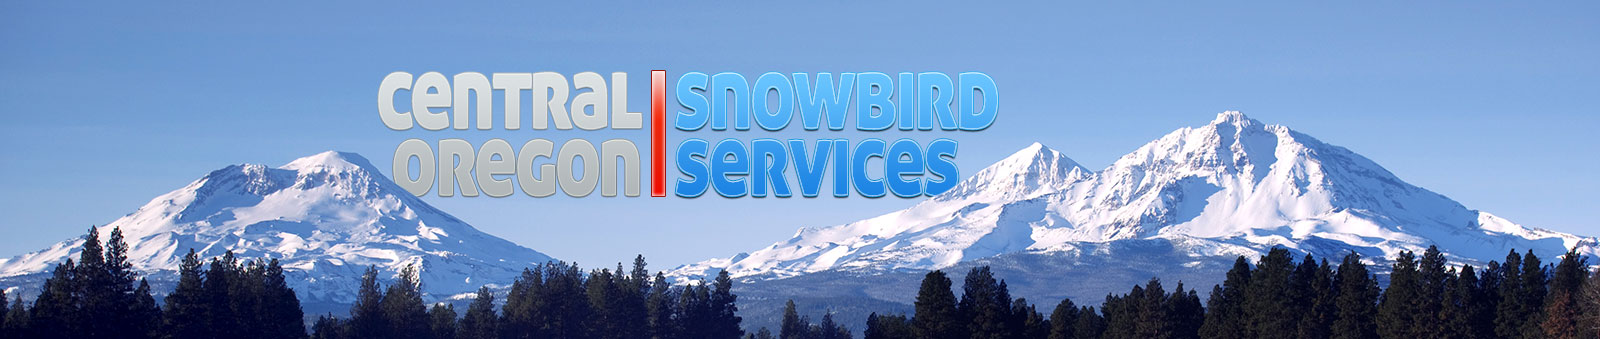 Central Oregon Snowbird Services